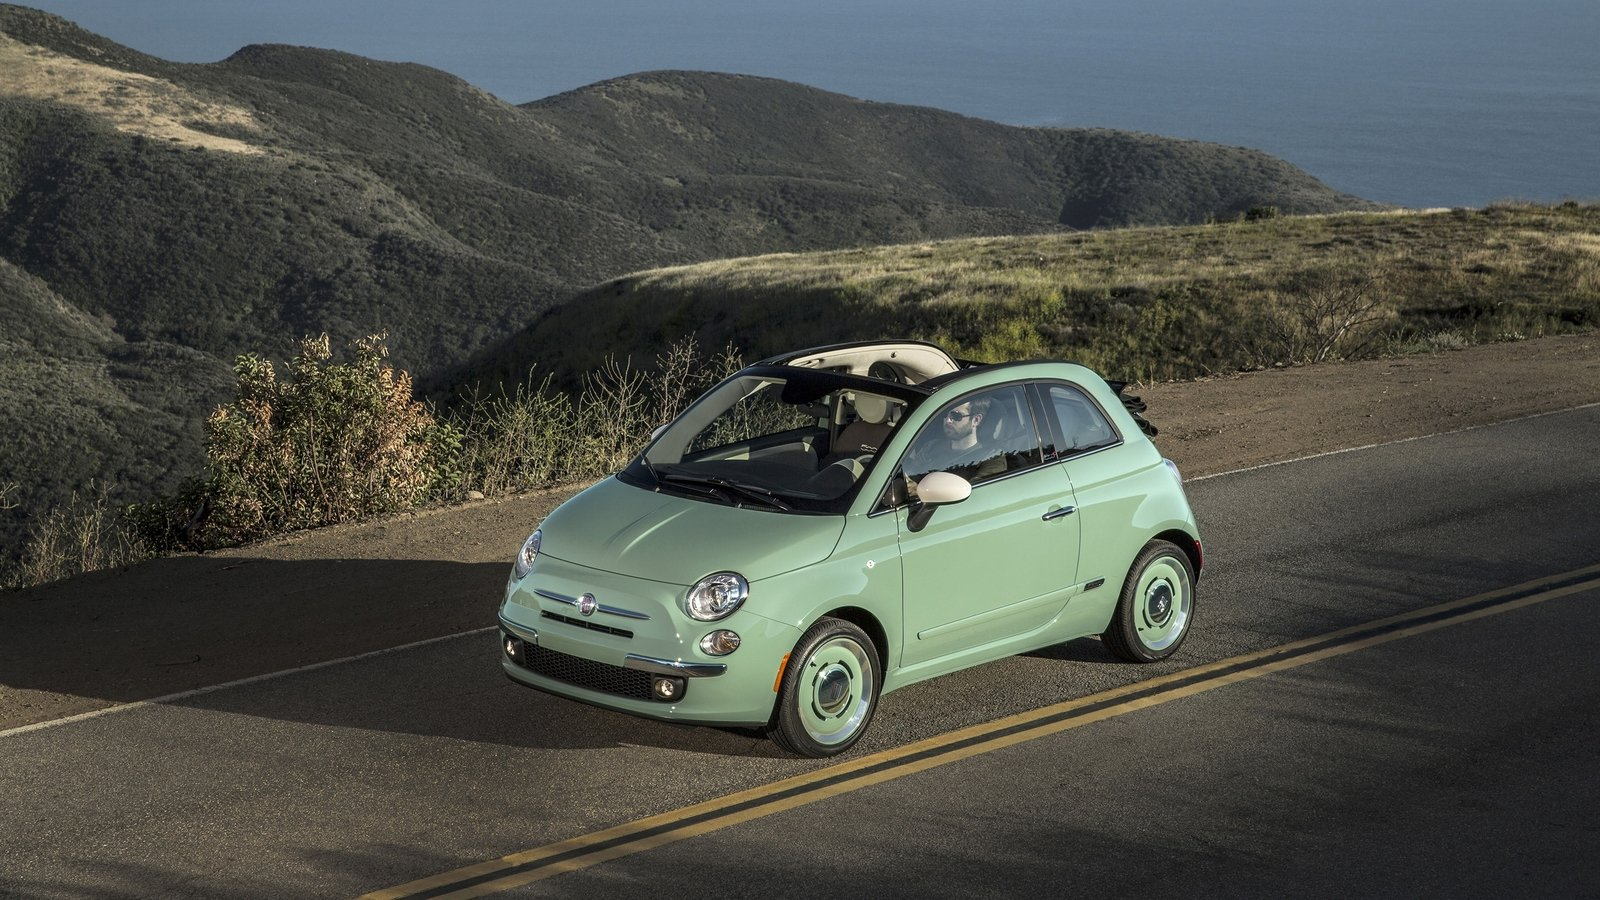 2015 fiat 500 1957 edition cabrio picture 626577 car review top speed. Black Bedroom Furniture Sets. Home Design Ideas